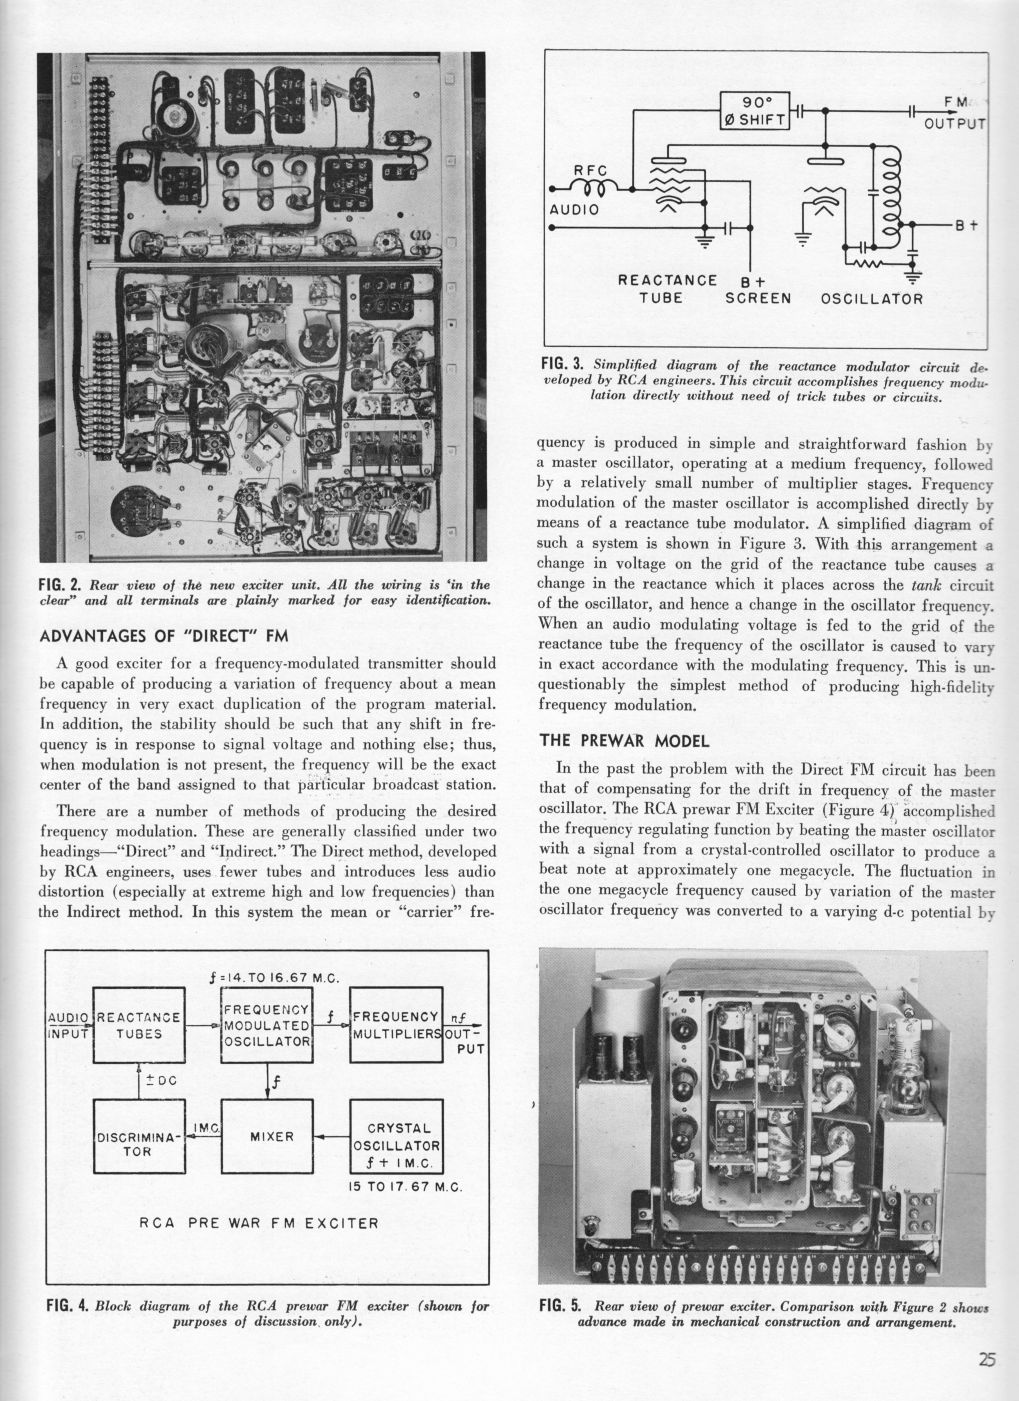 RCA MI-7015 Direct FM Exciter, page 2